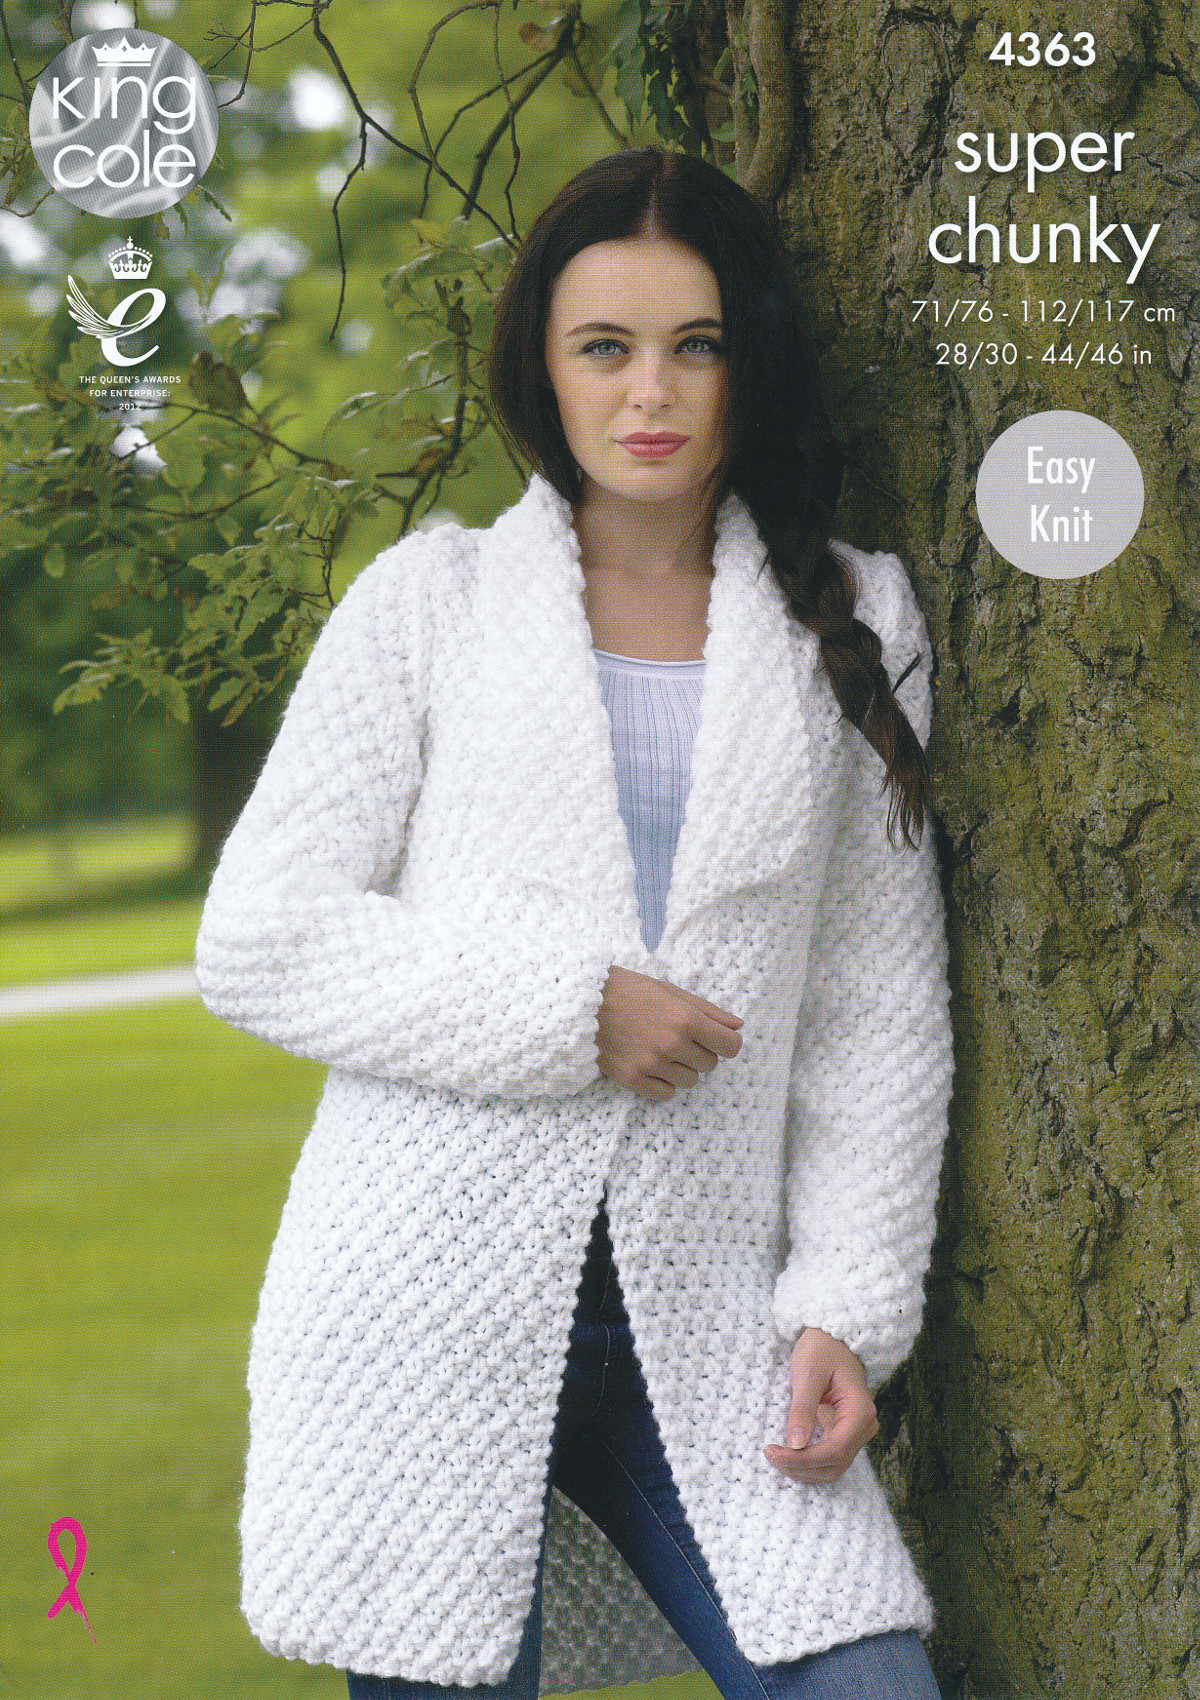 King Cole Ladies Super Chunky Knitting Pattern Jacket ...